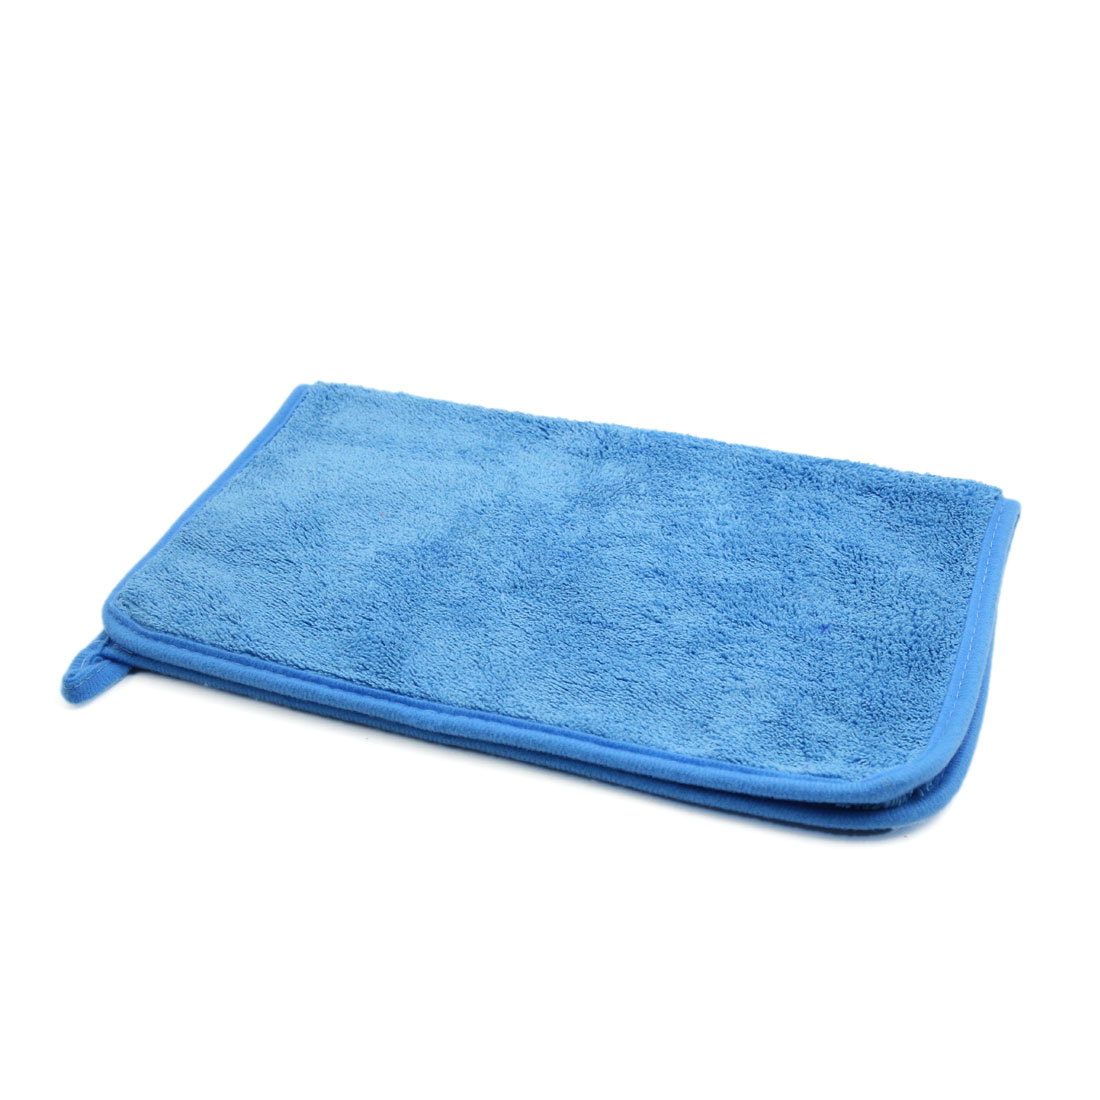 Light Blue Multi-purpose Car Vehicle Body Cleaning Washing Cloth Towel 40cm x 30cm